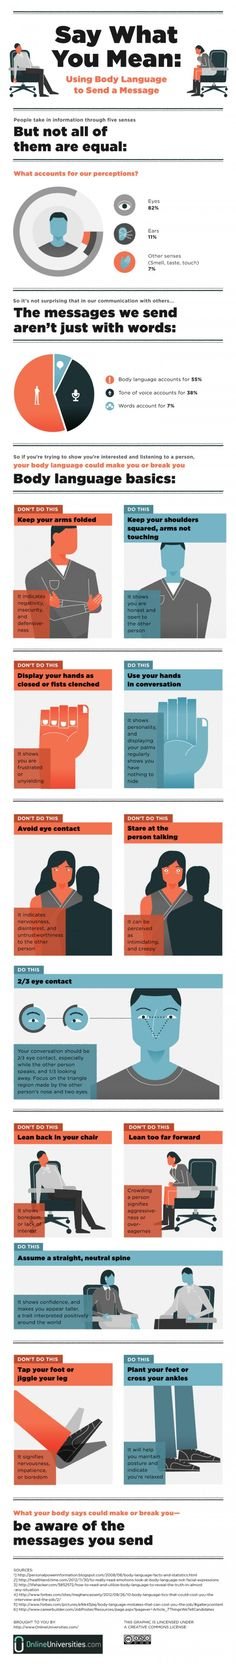 Say What You Mean [infographic]